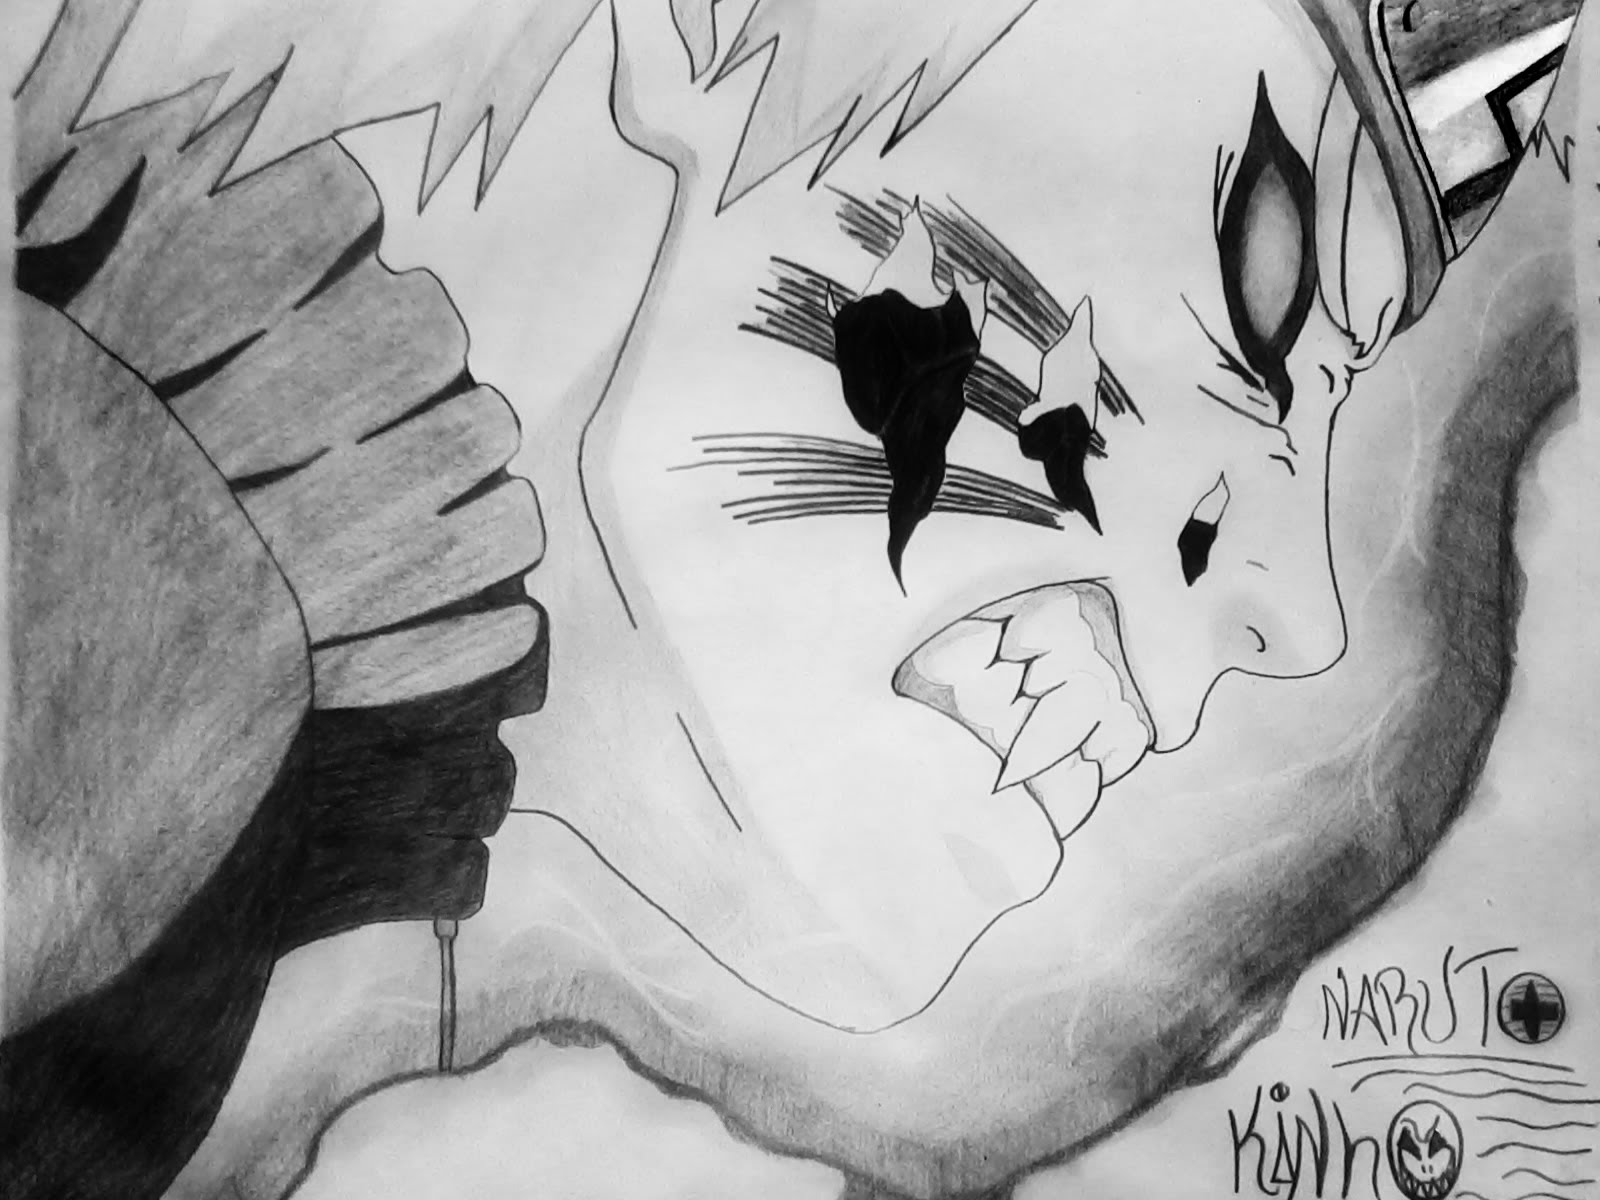 Drawn naruto naruto kyuubi Naruto Kyuubi YouTube How Draw